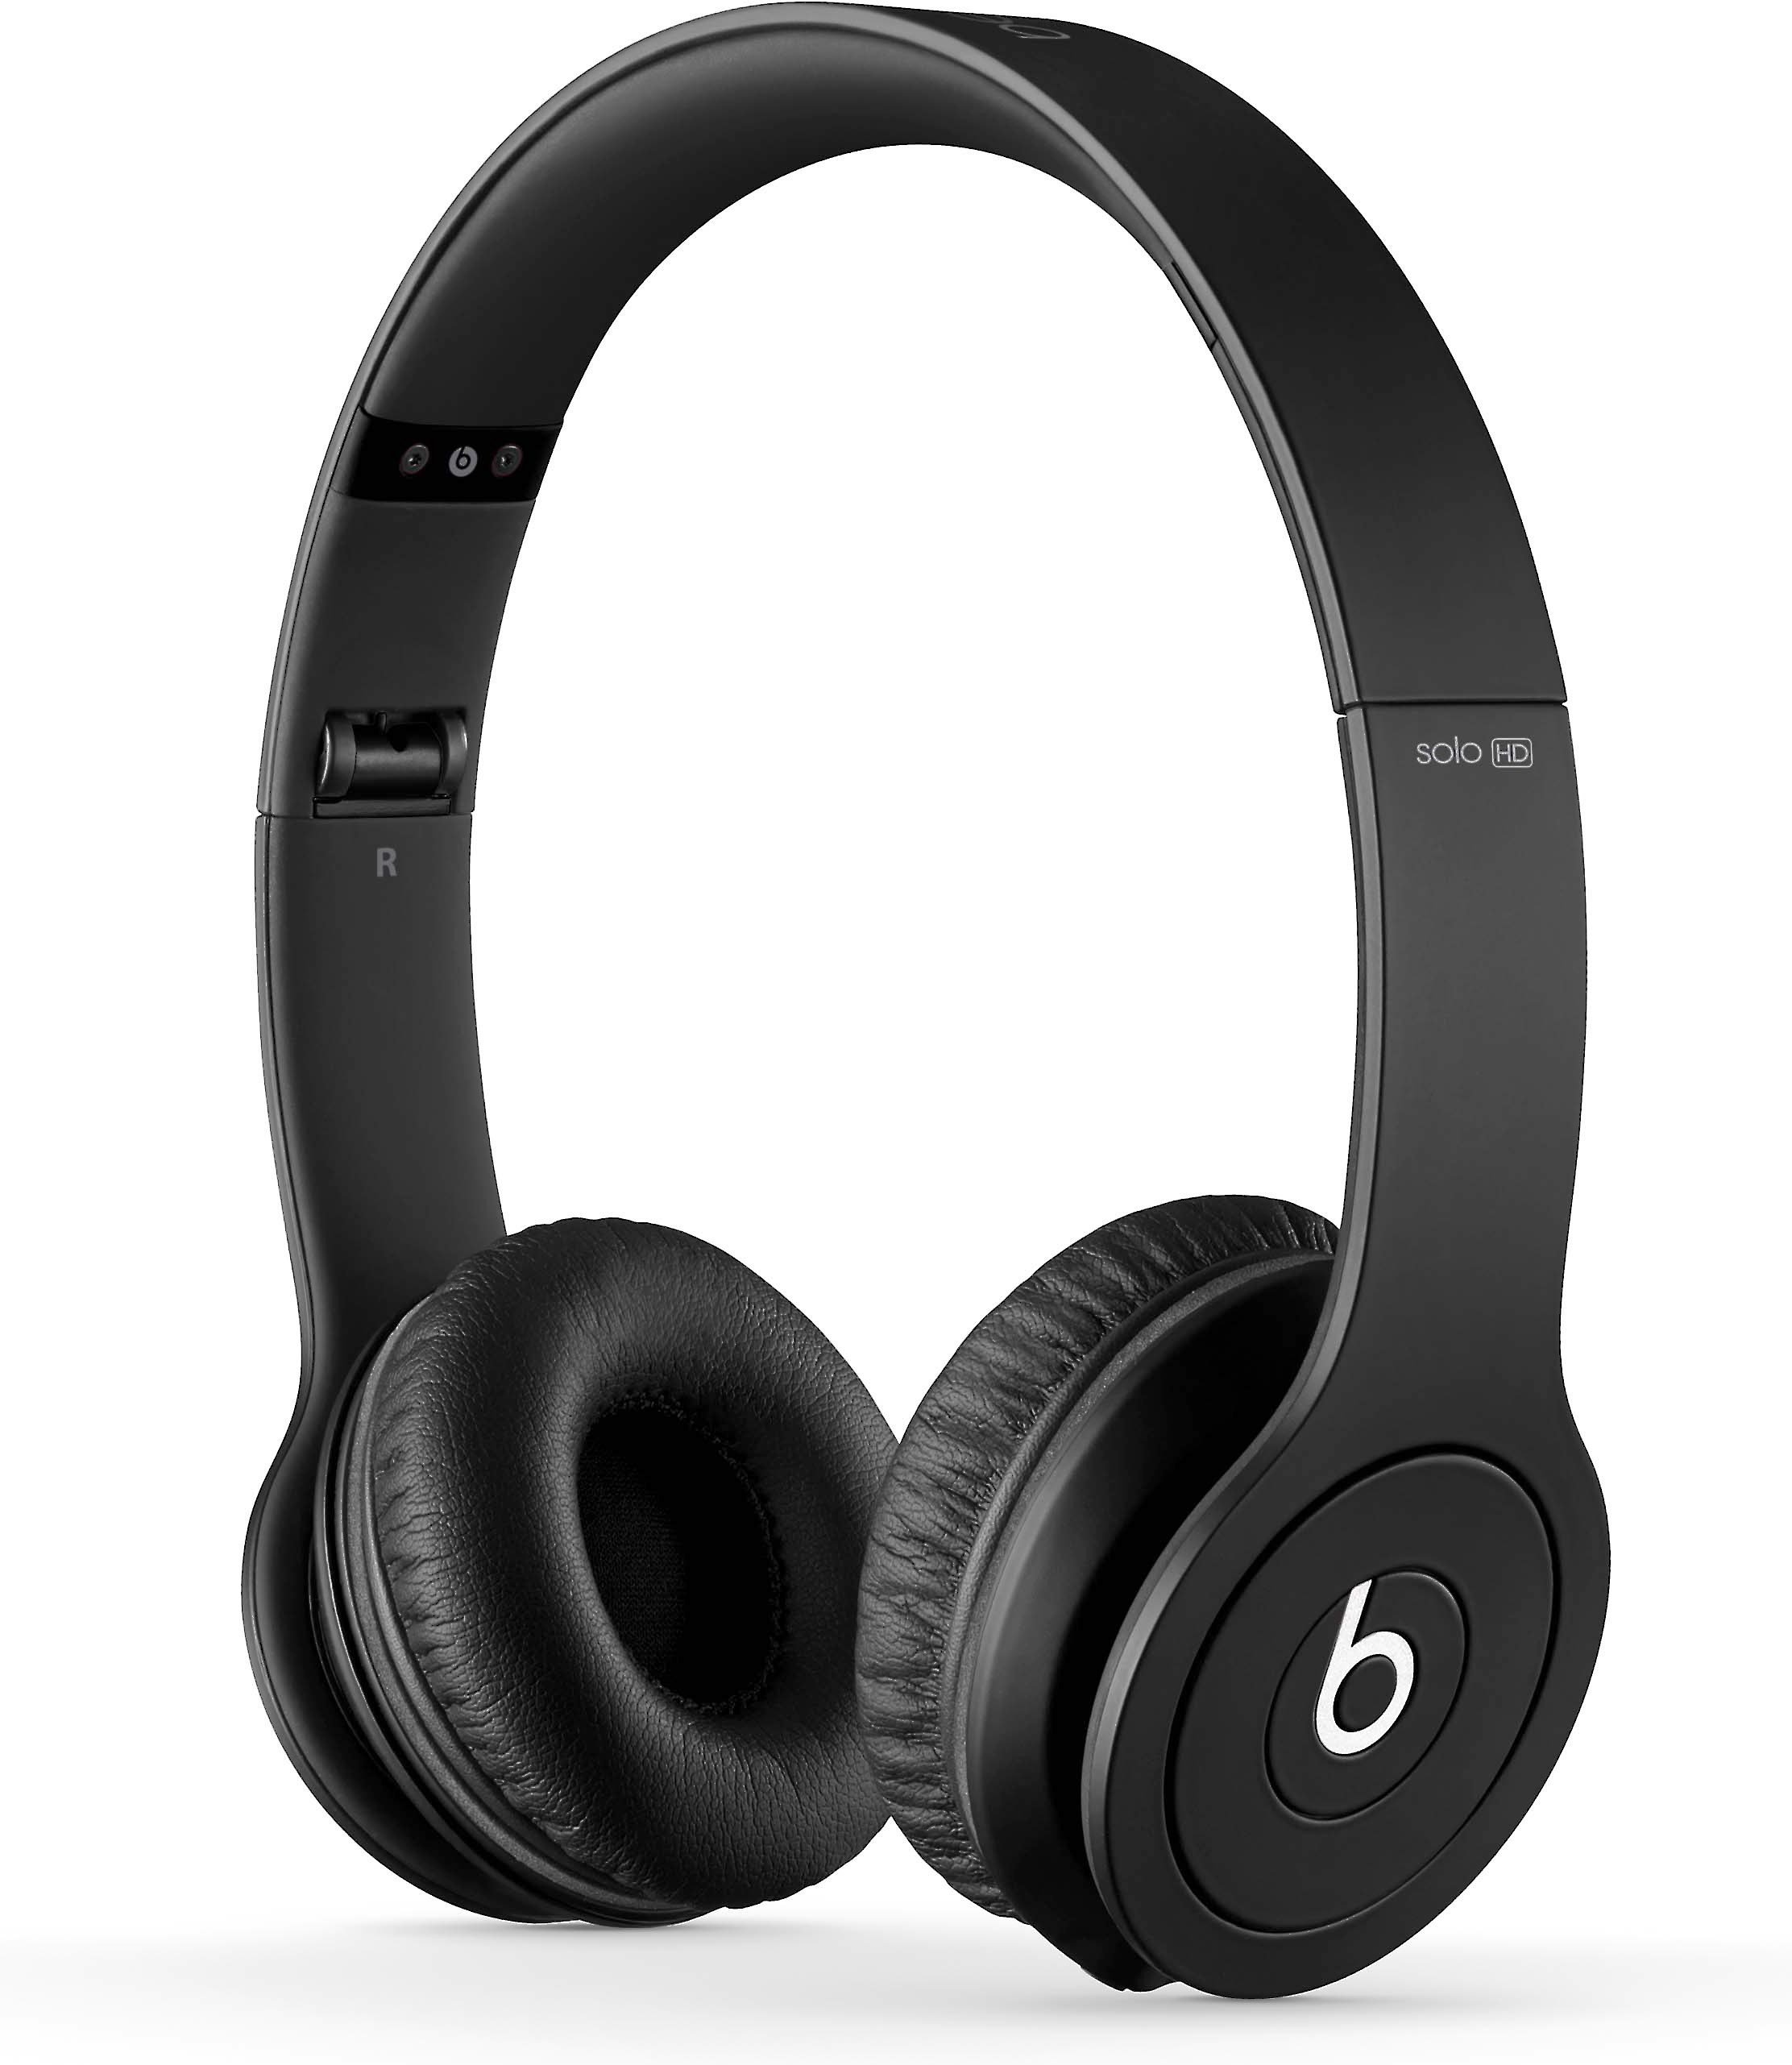 Beats By Dr Dre 174 Solo 174 Hd Black On Ear Headphone With